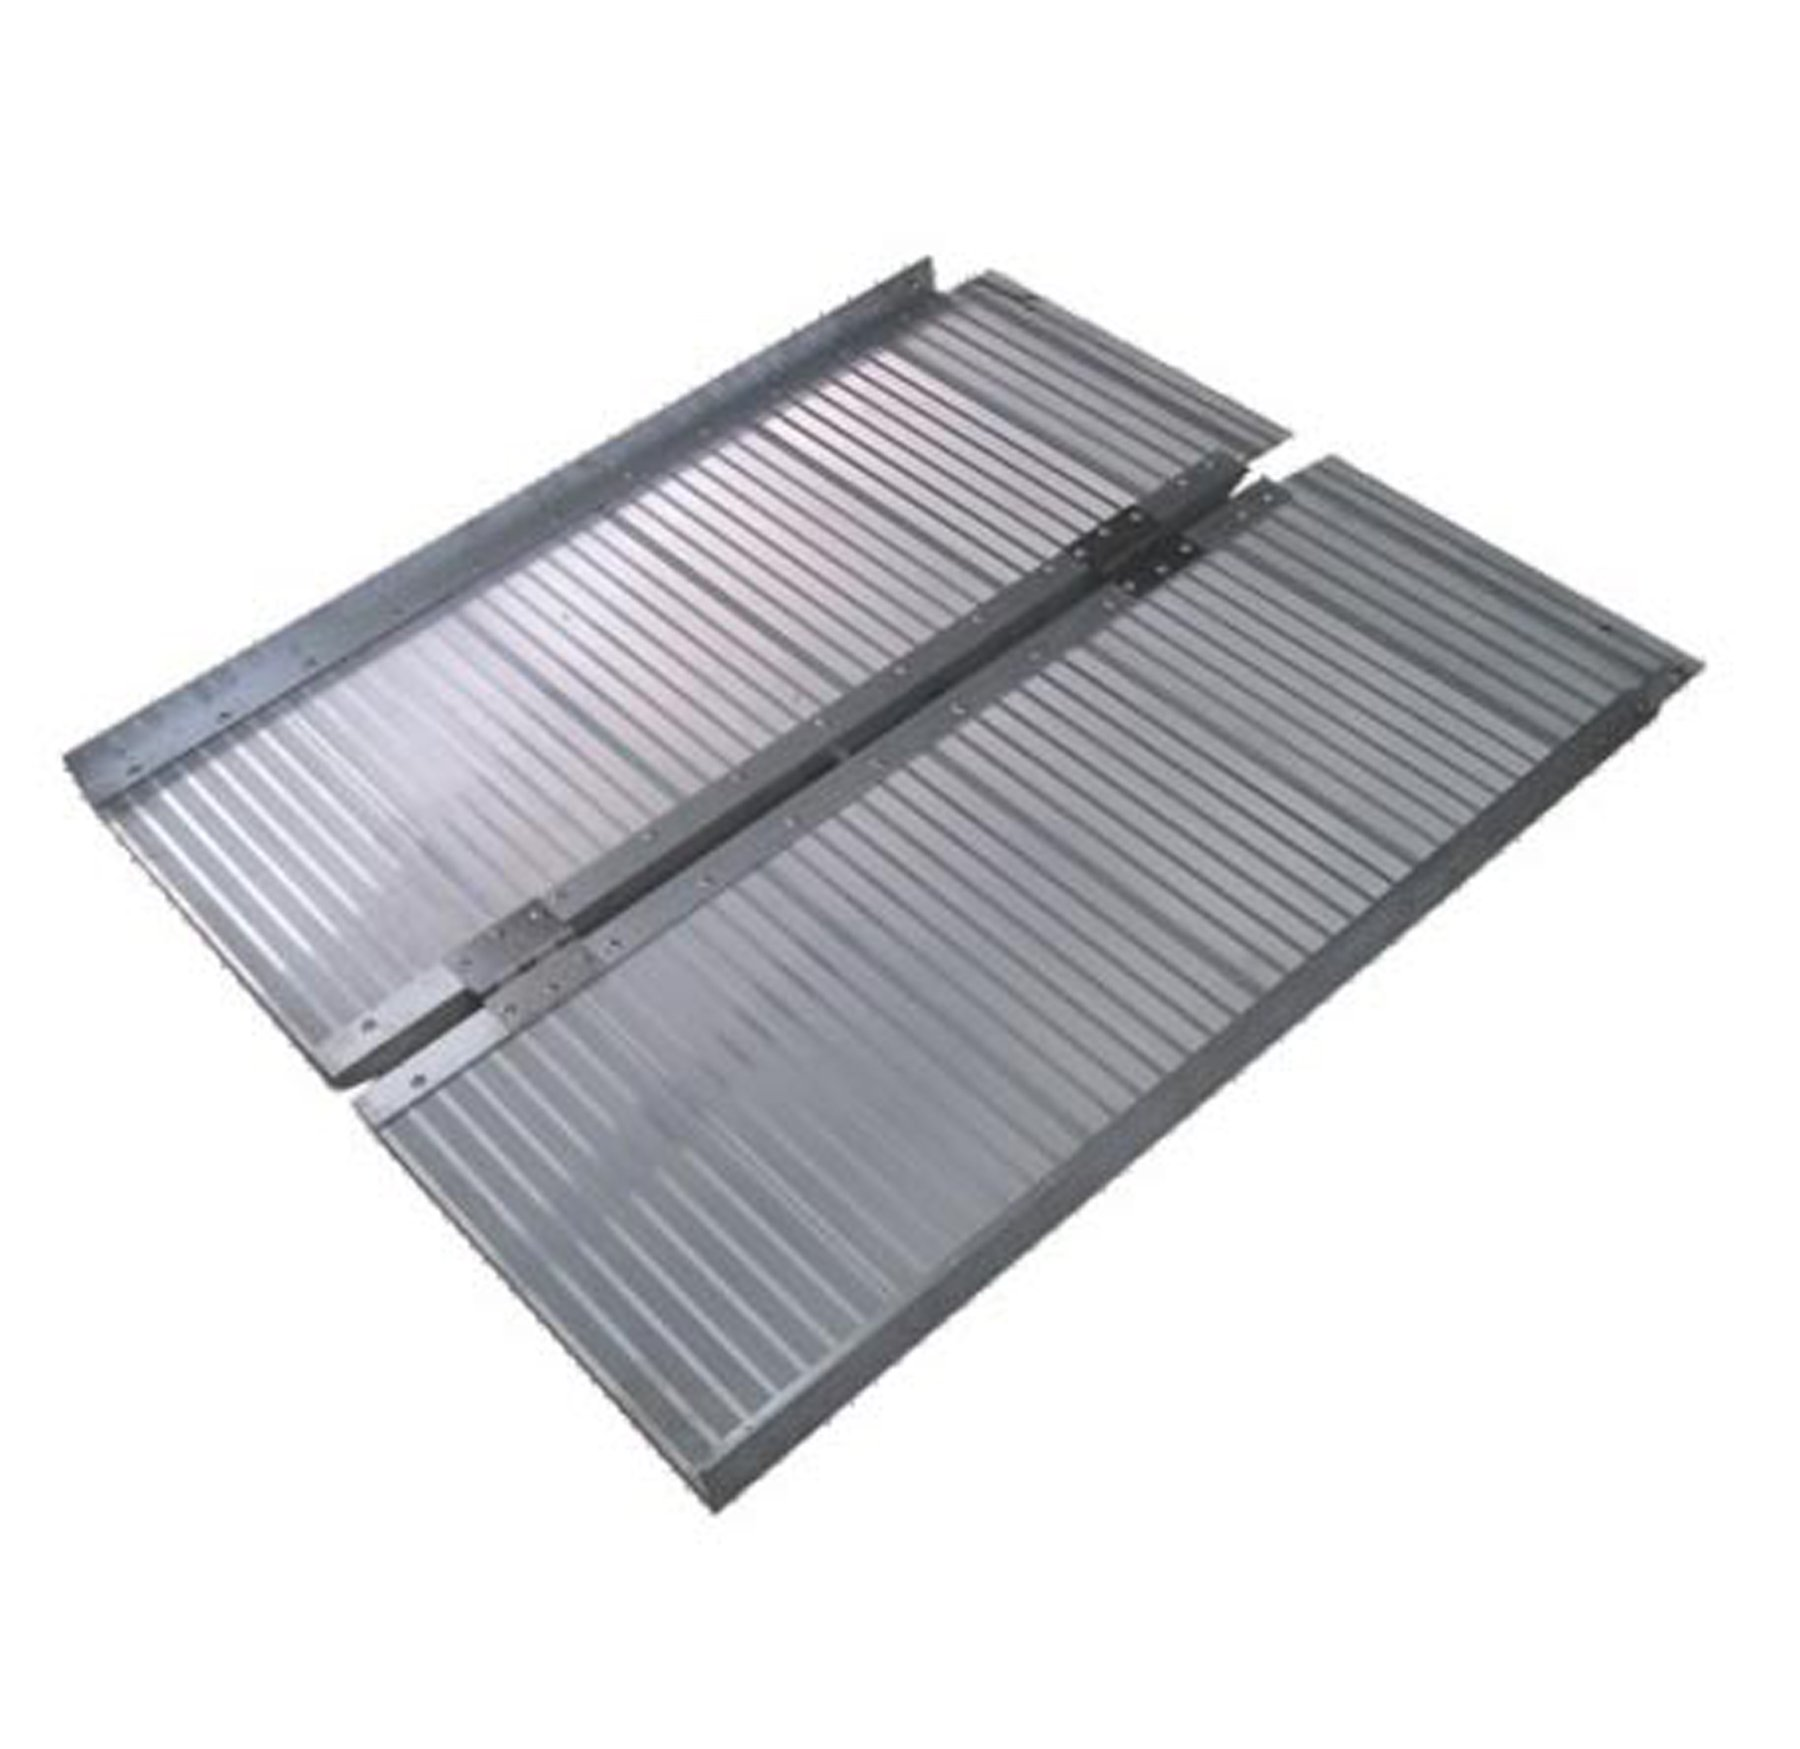 Wheelchair Ramp, 6 foot Folding Aluminum